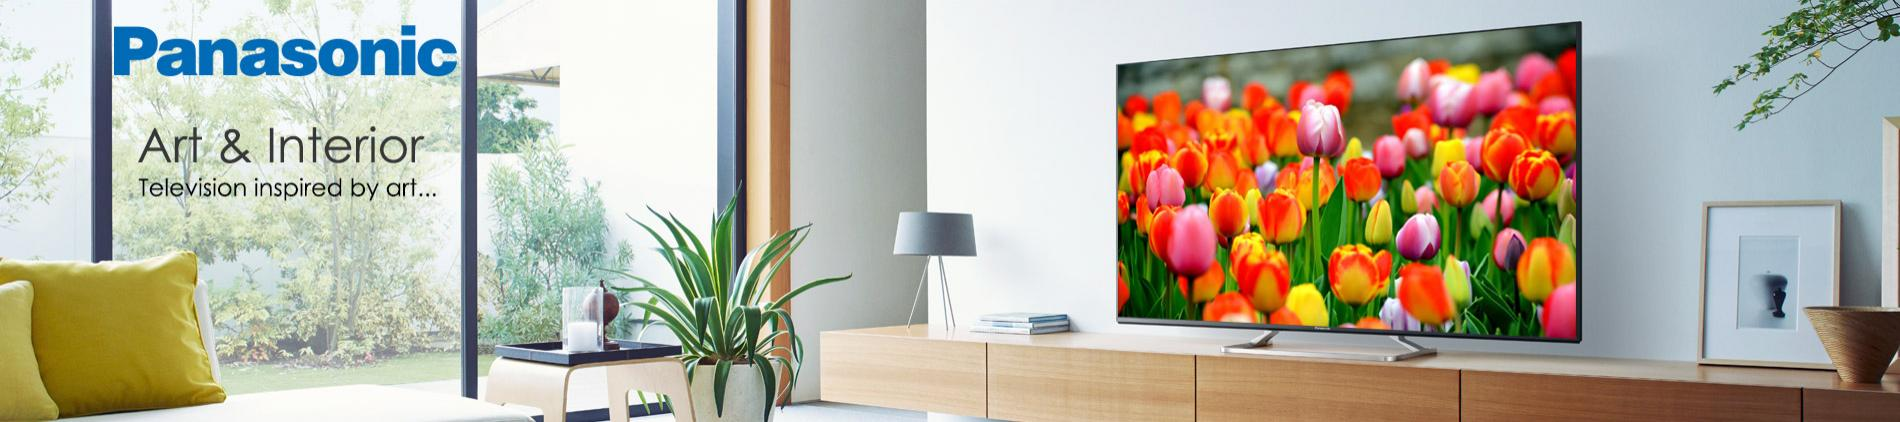 Panasonic 4K UltraHD